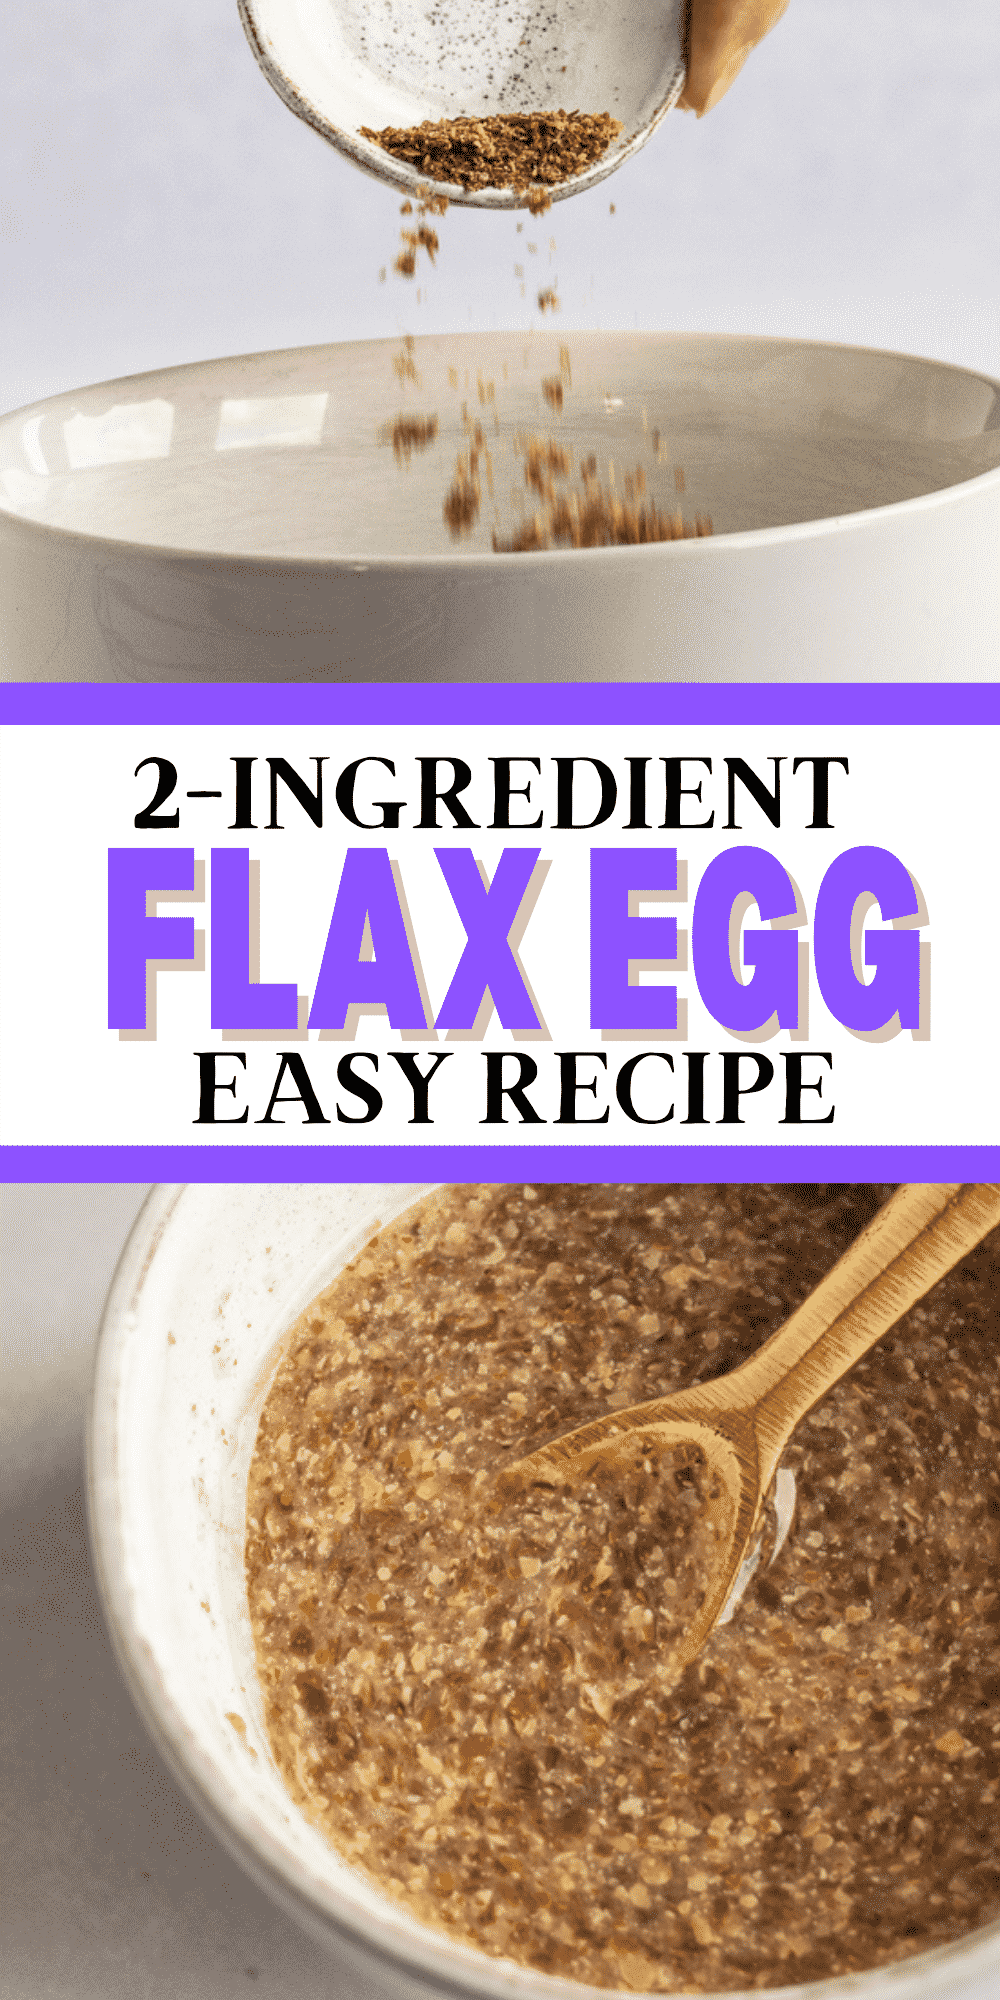 Learn how to make a flax egg for all your vegan baking! It only takes 2 simple ingredients to make the best vegan egg substitute. #veganegg #veganbaking